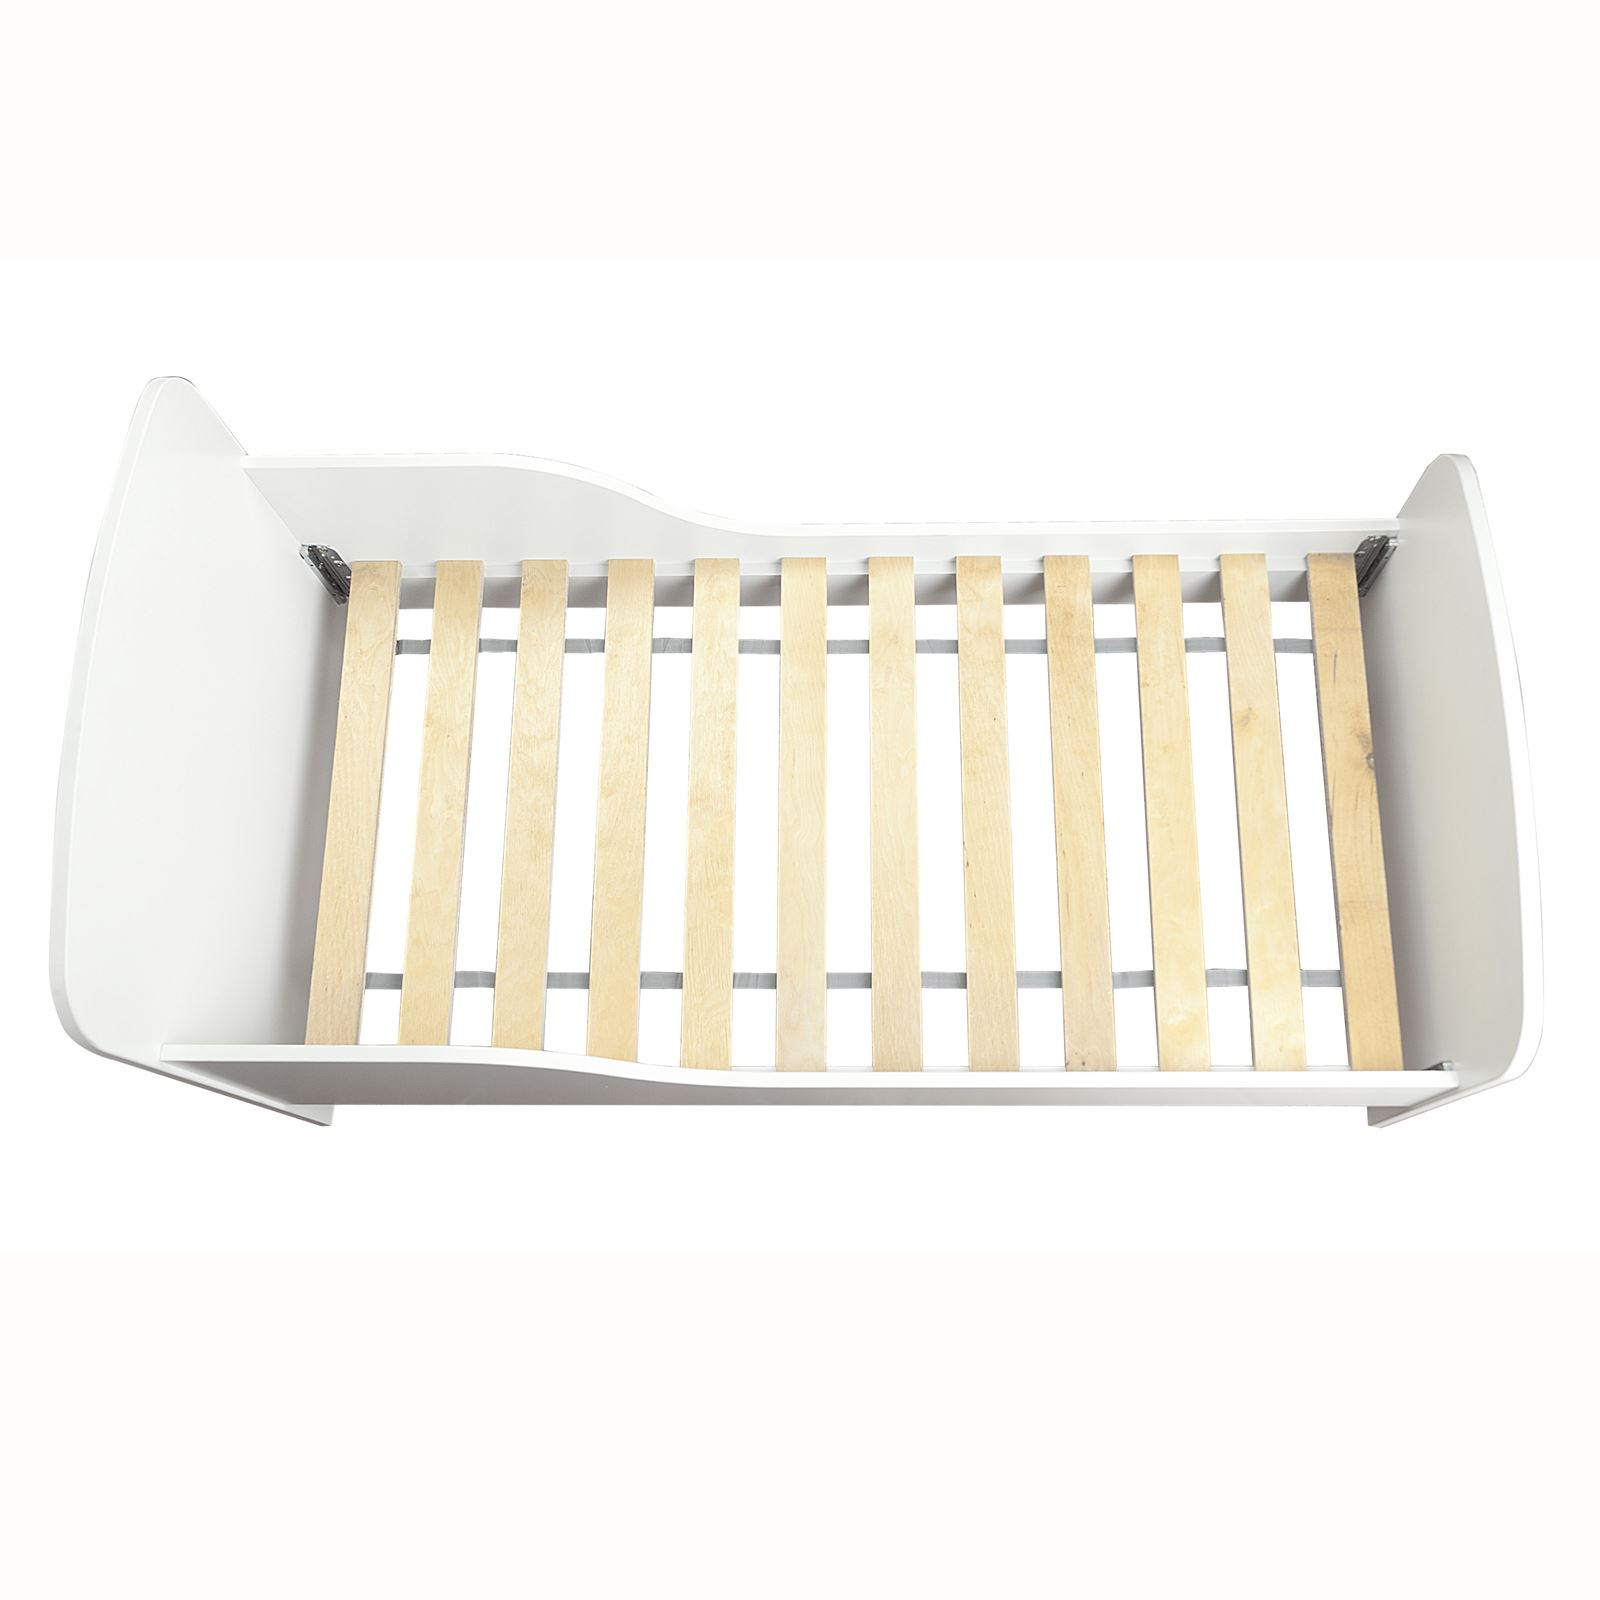 PLAIN WHITE MDF TODDLER BED MATTRESS WITH STORAGE